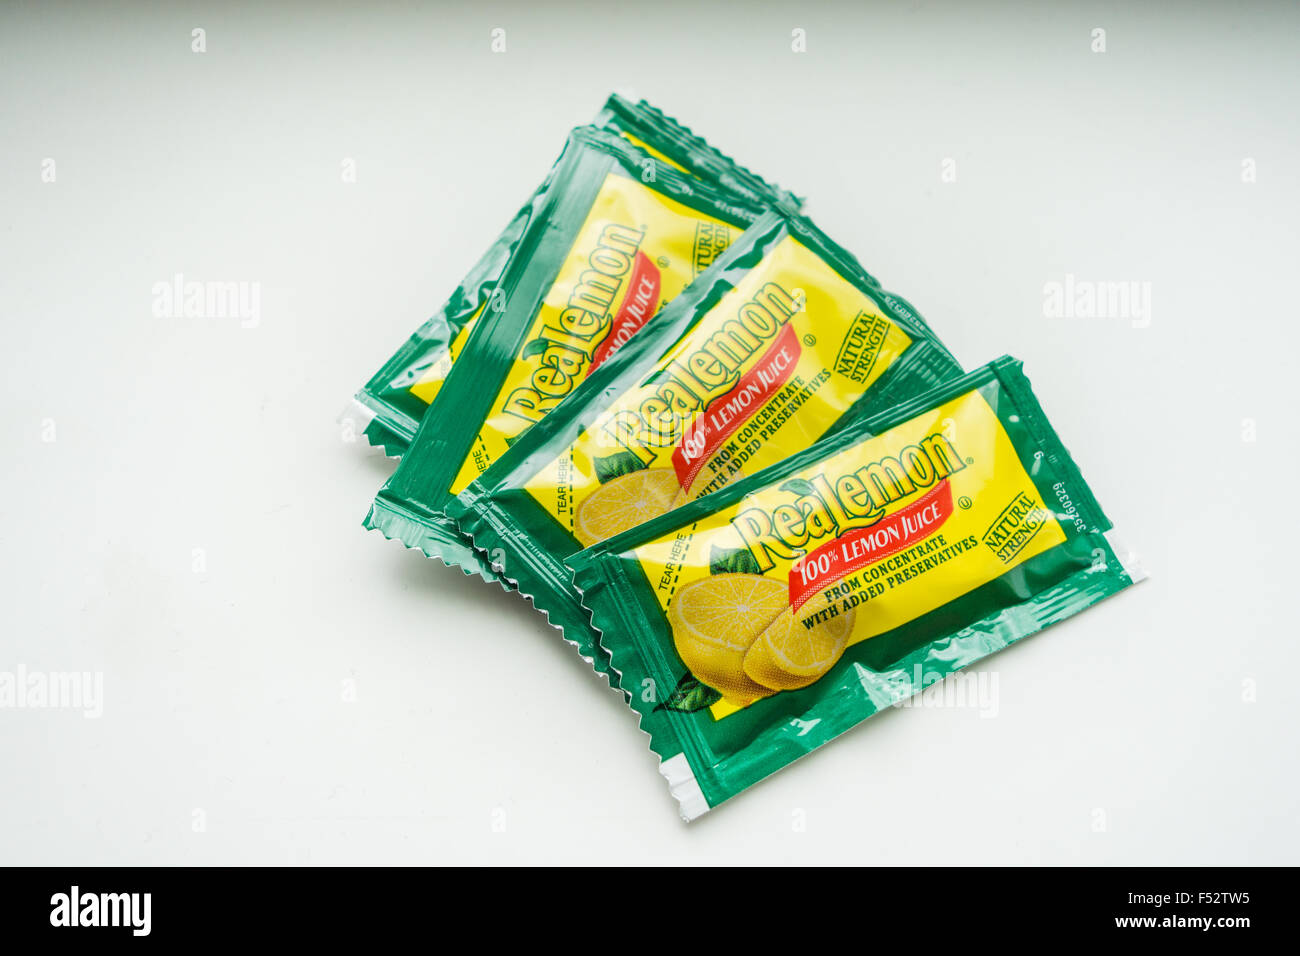 lemon concentrate pack - Stock Image